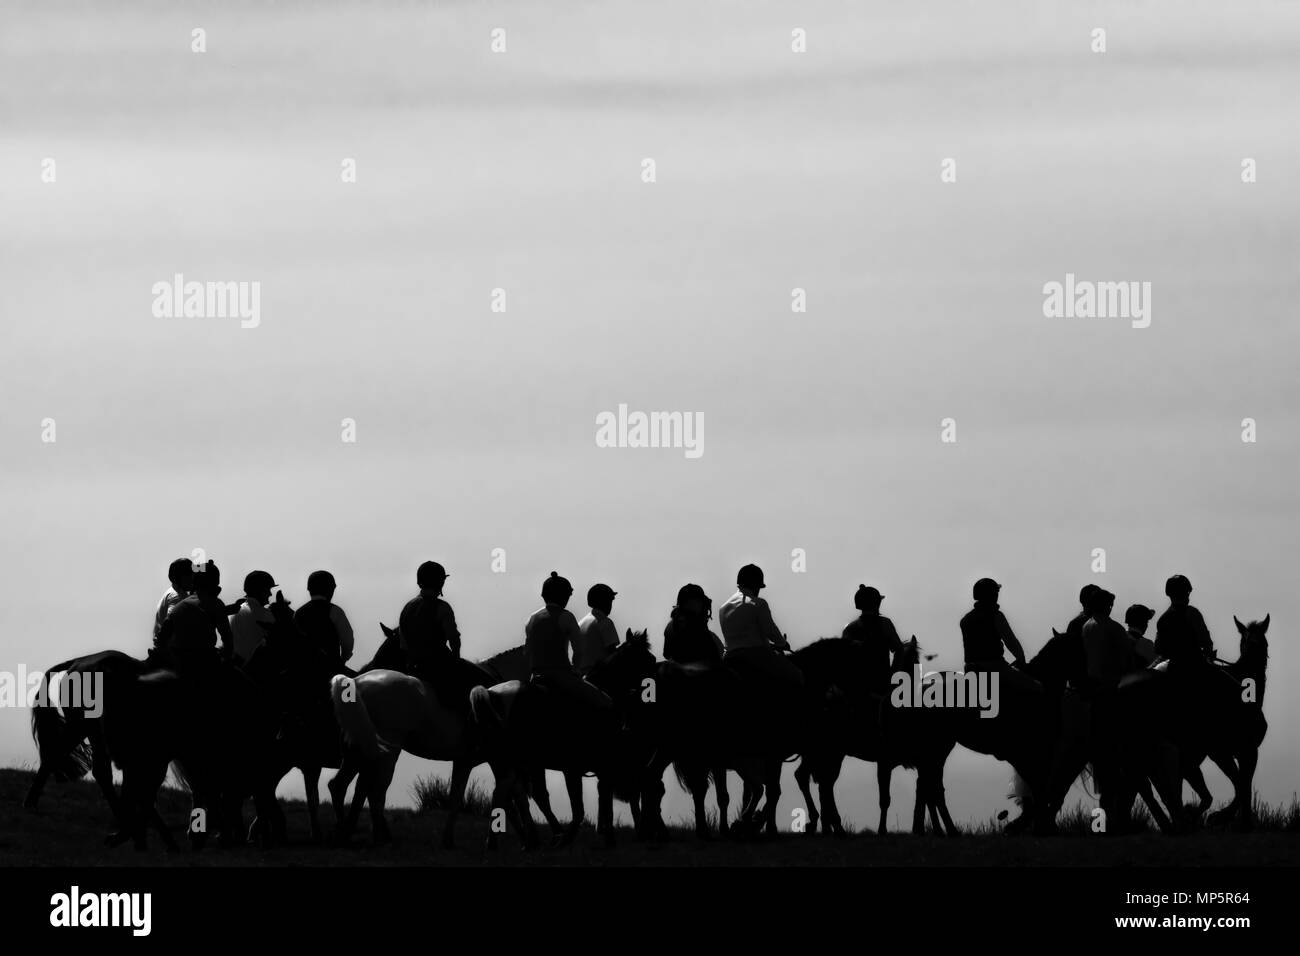 Common Riding Stock Photos & Common Riding Stock Images - Alamy